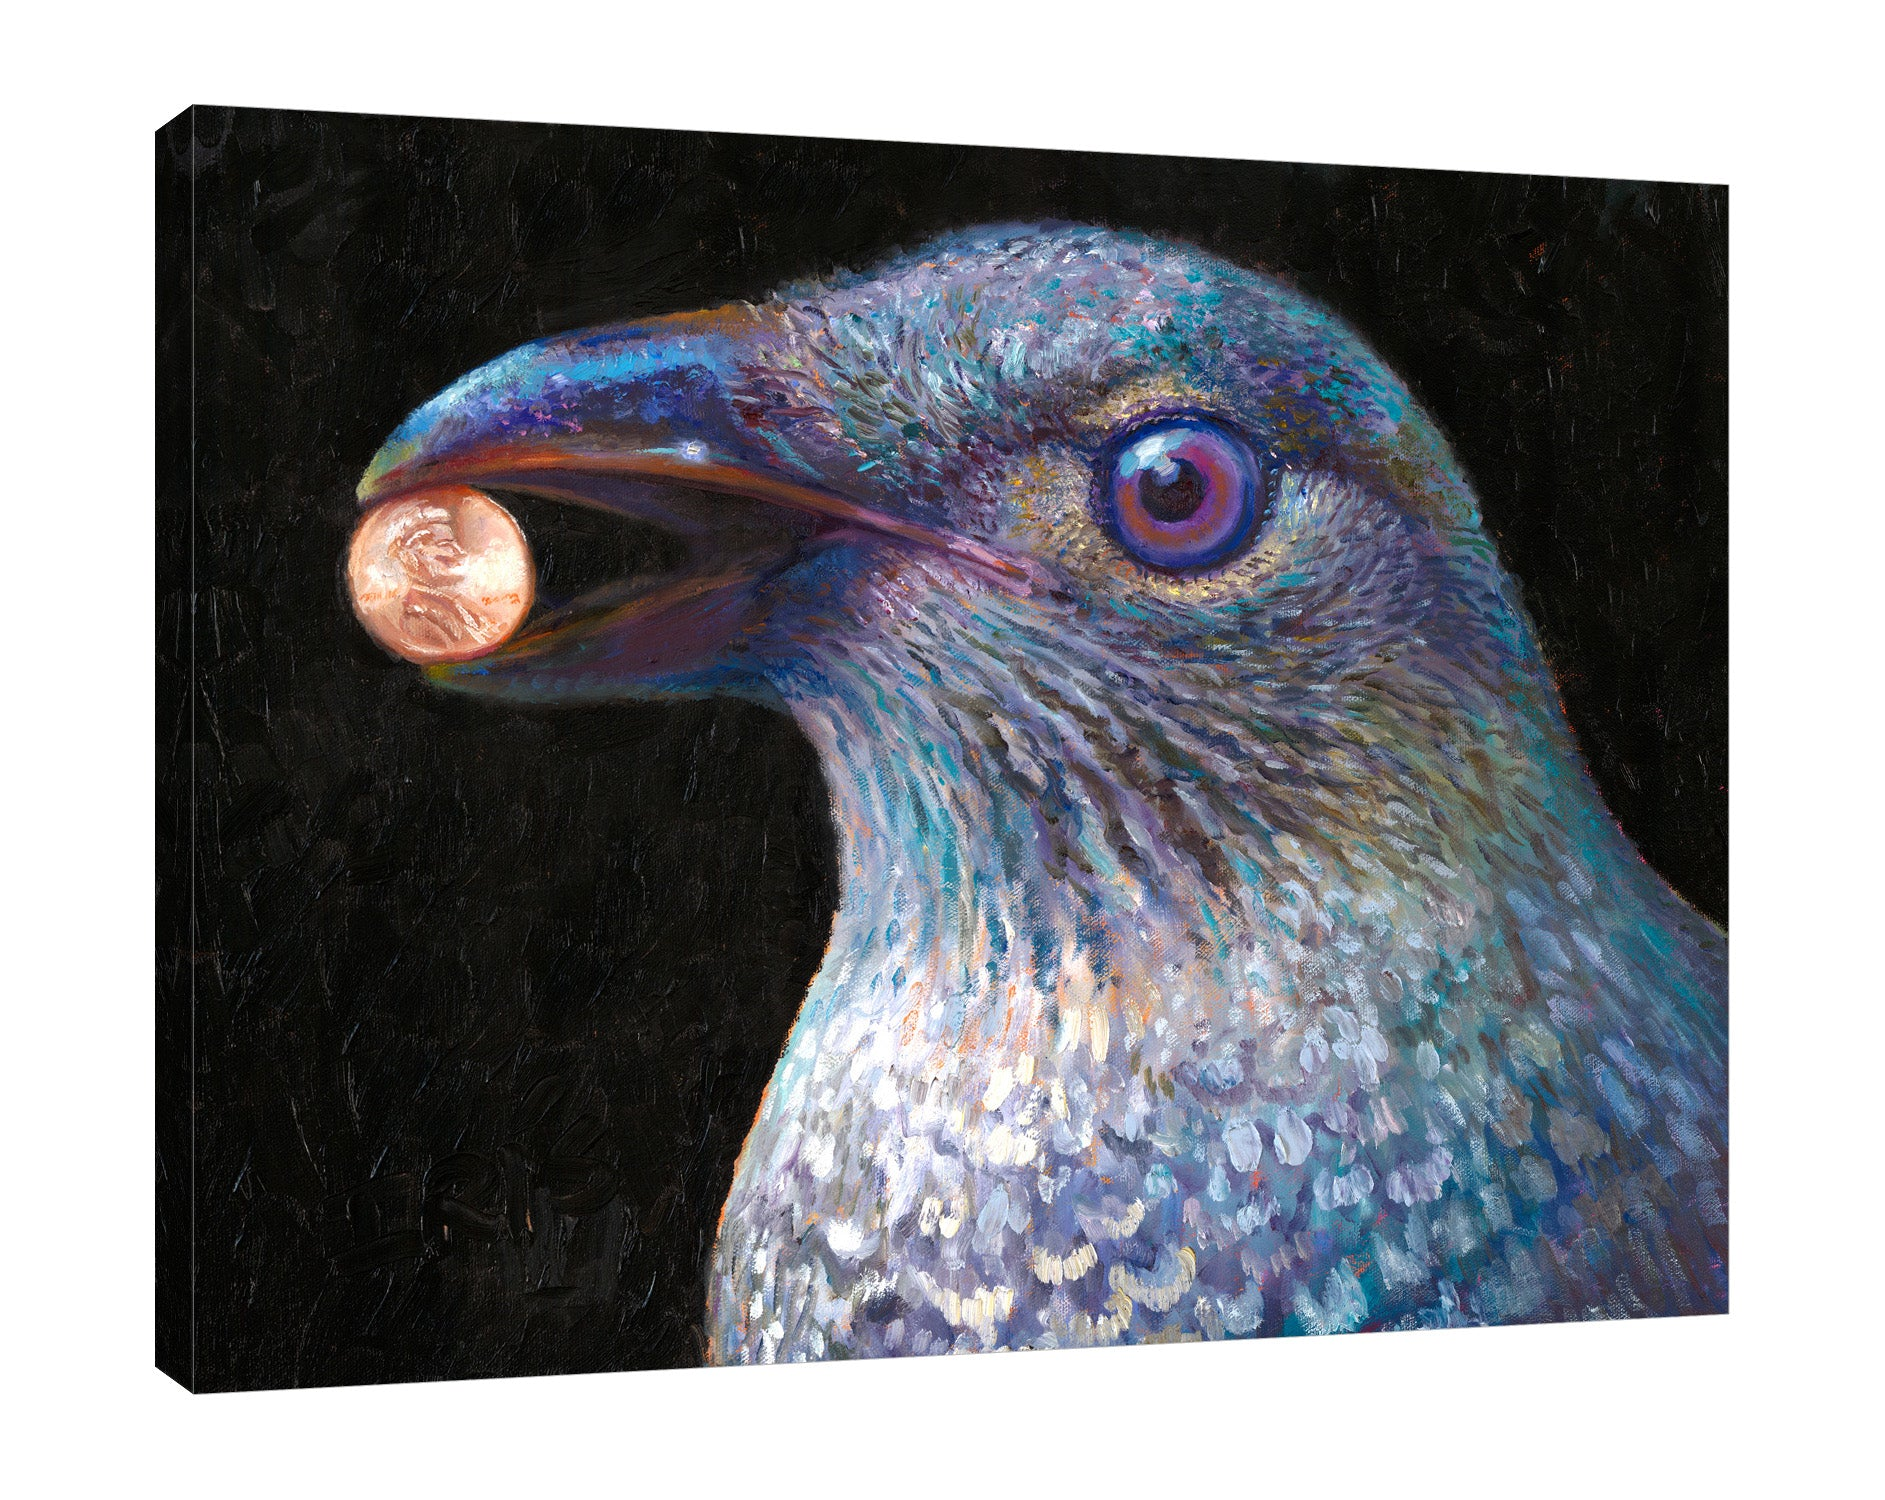 Iris-Scott,Modern & Contemporary,Animals,Impressionism,surreal,finger paint,animal,nature,birds,